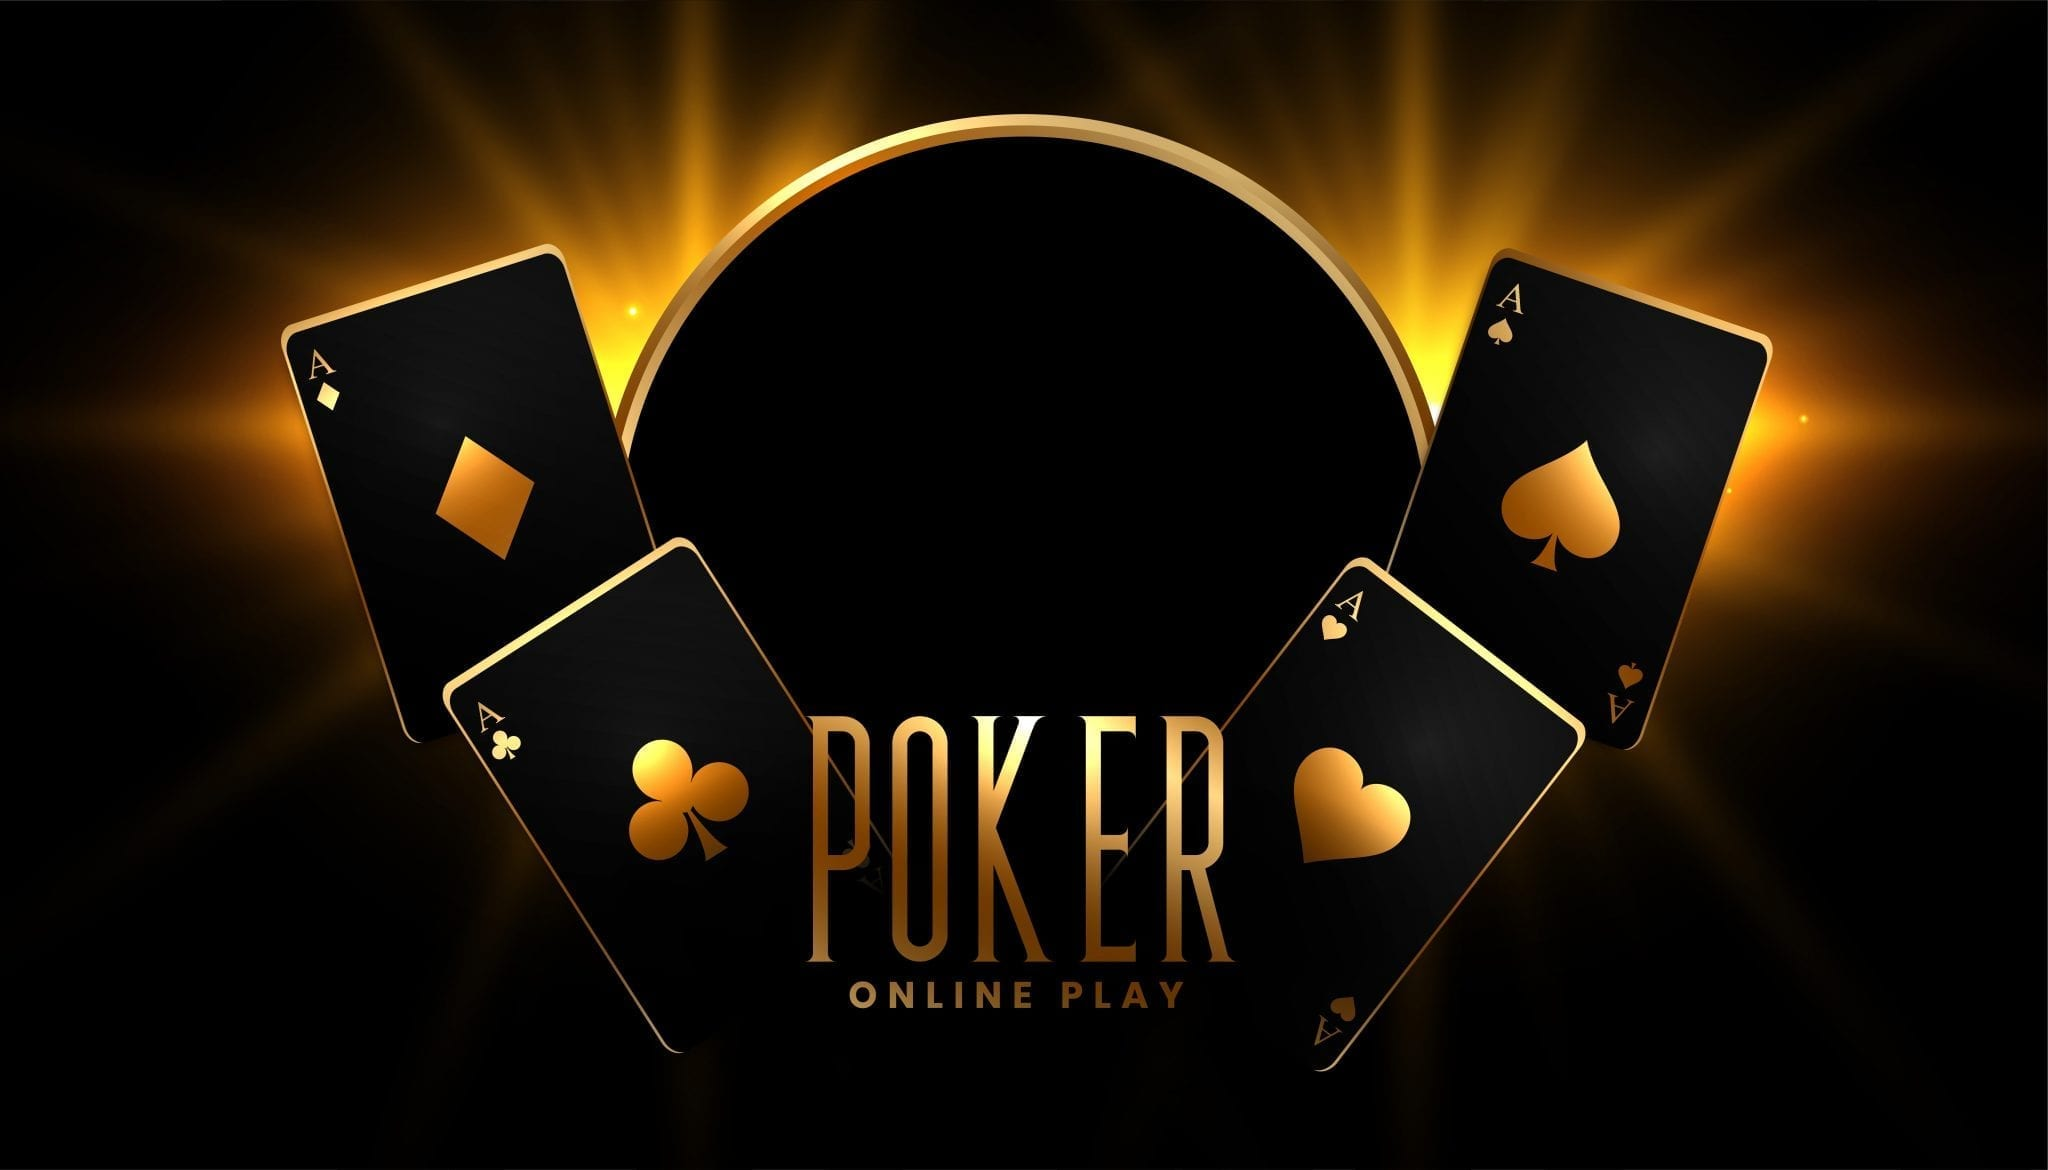 Tips to get free online Poker money